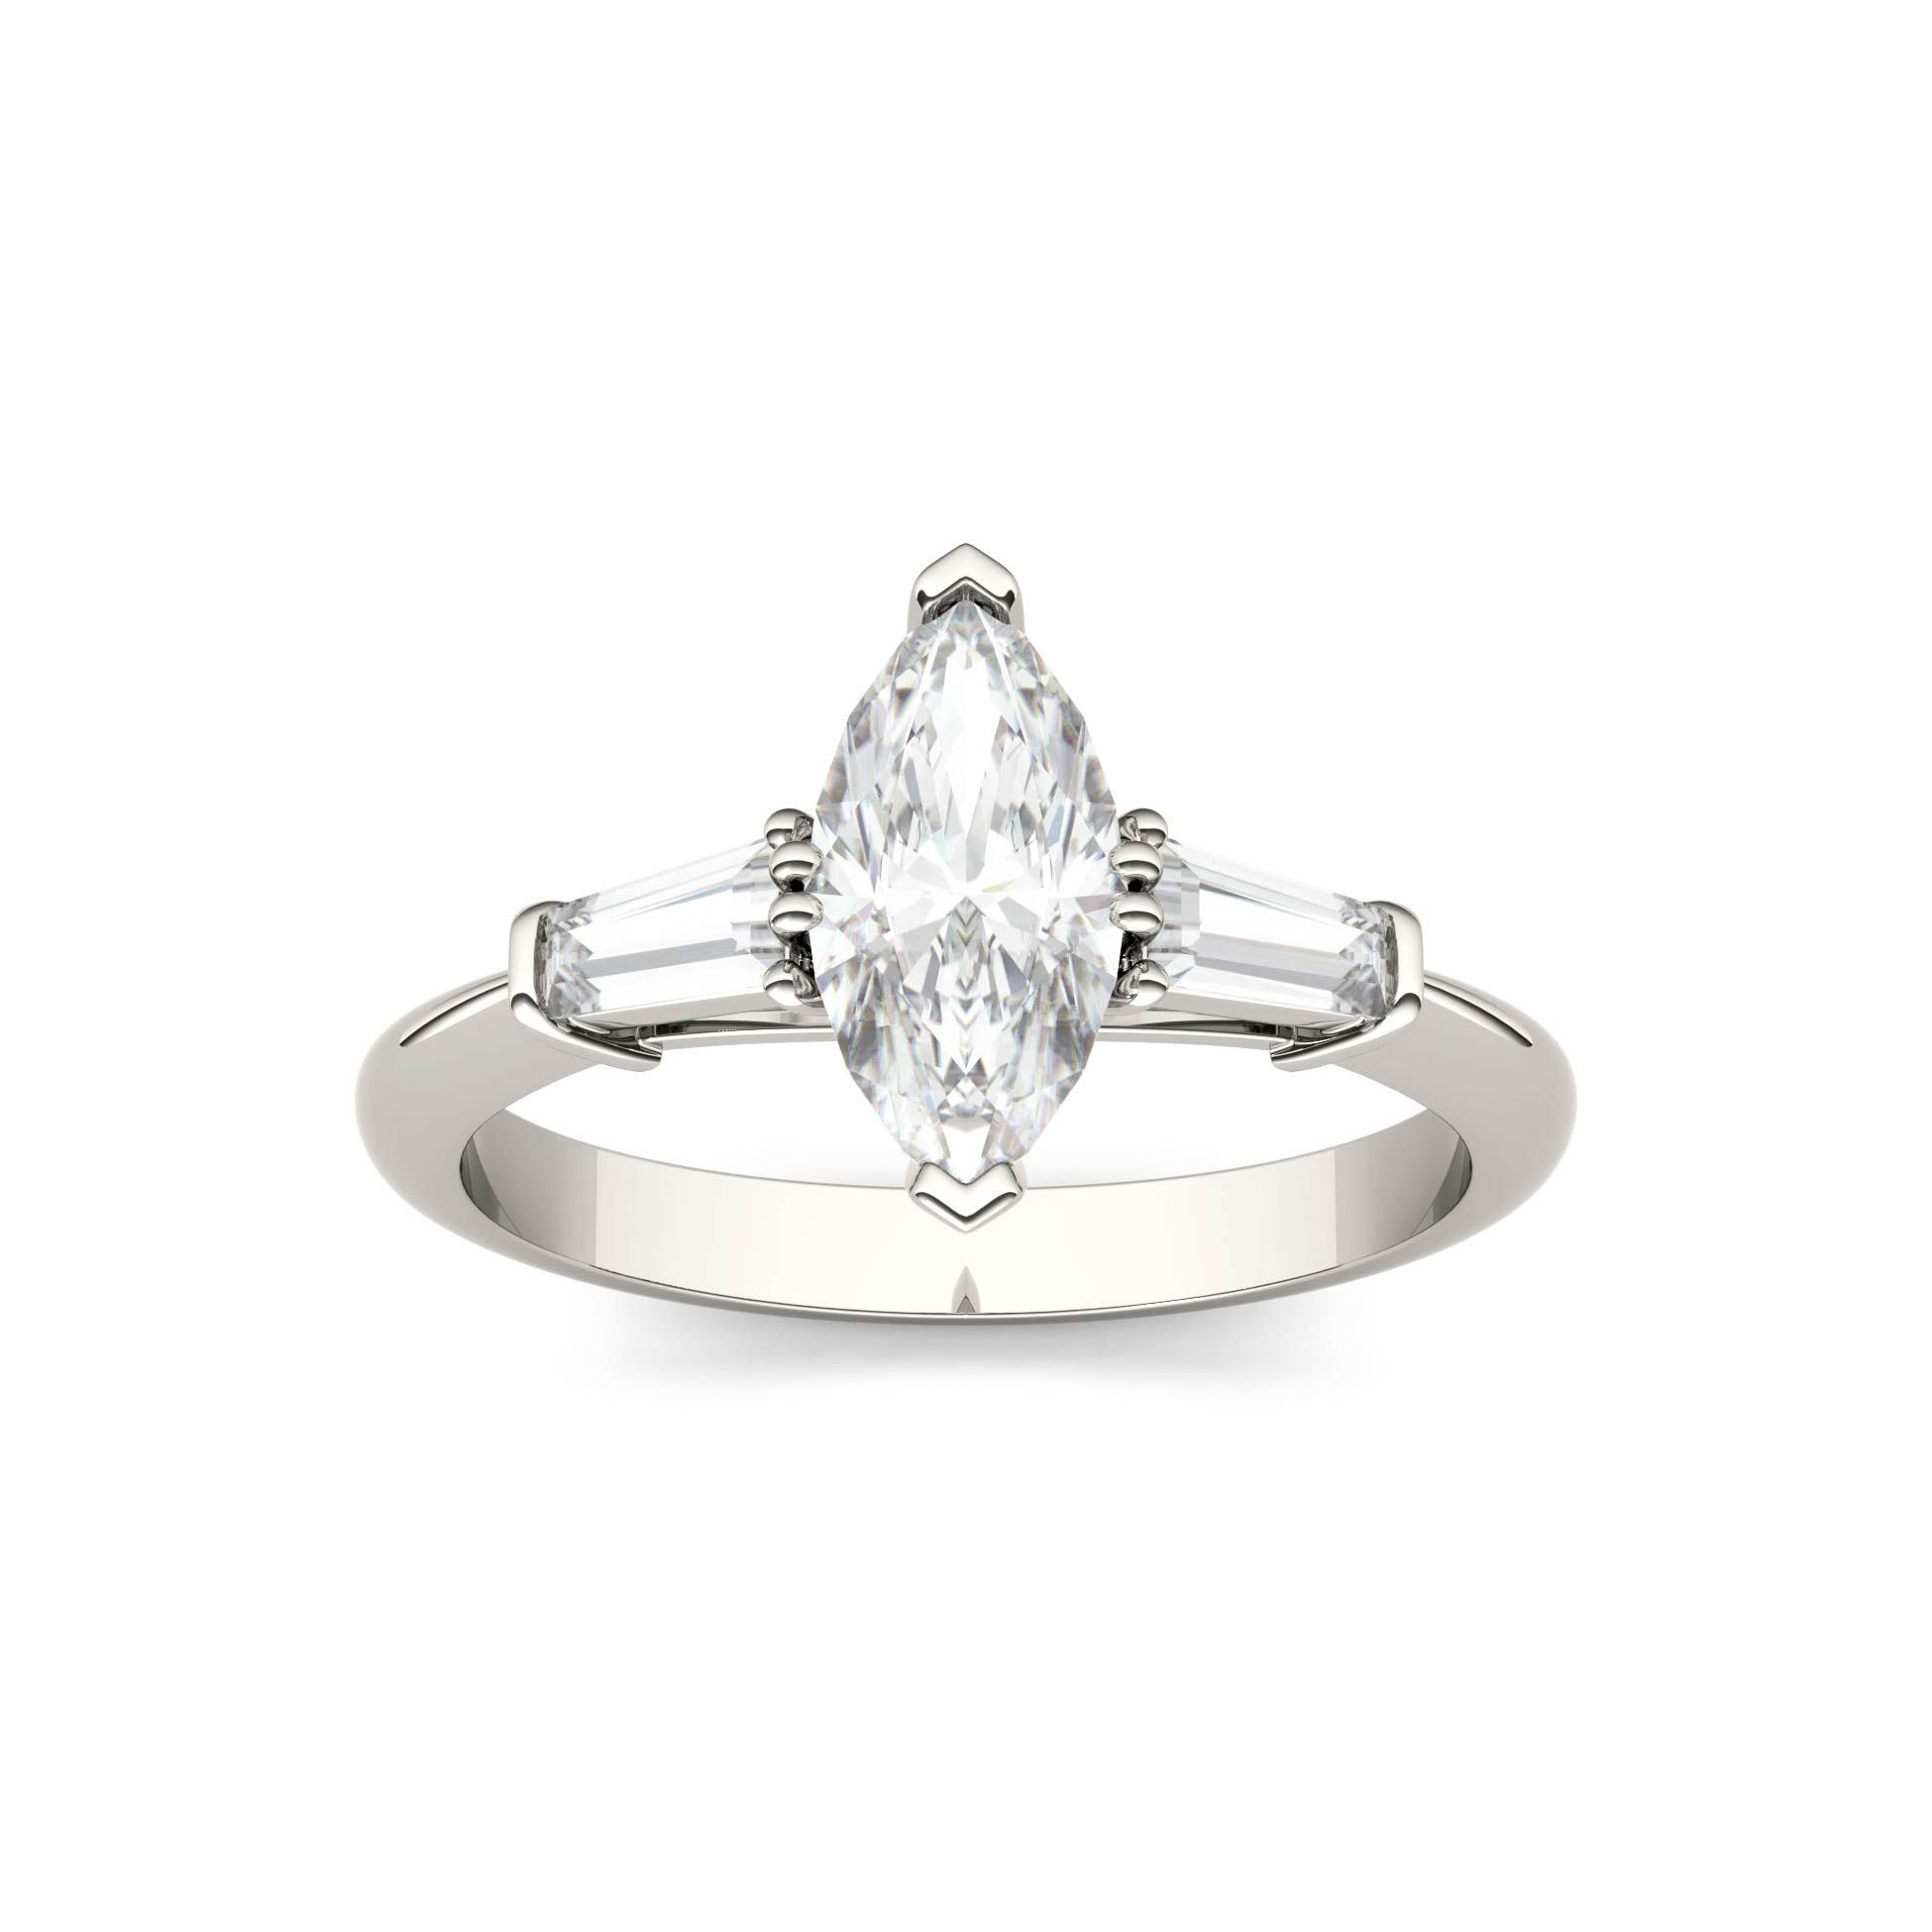 15 Moissanite Engagement Rings for the Eco-Friendly Bride